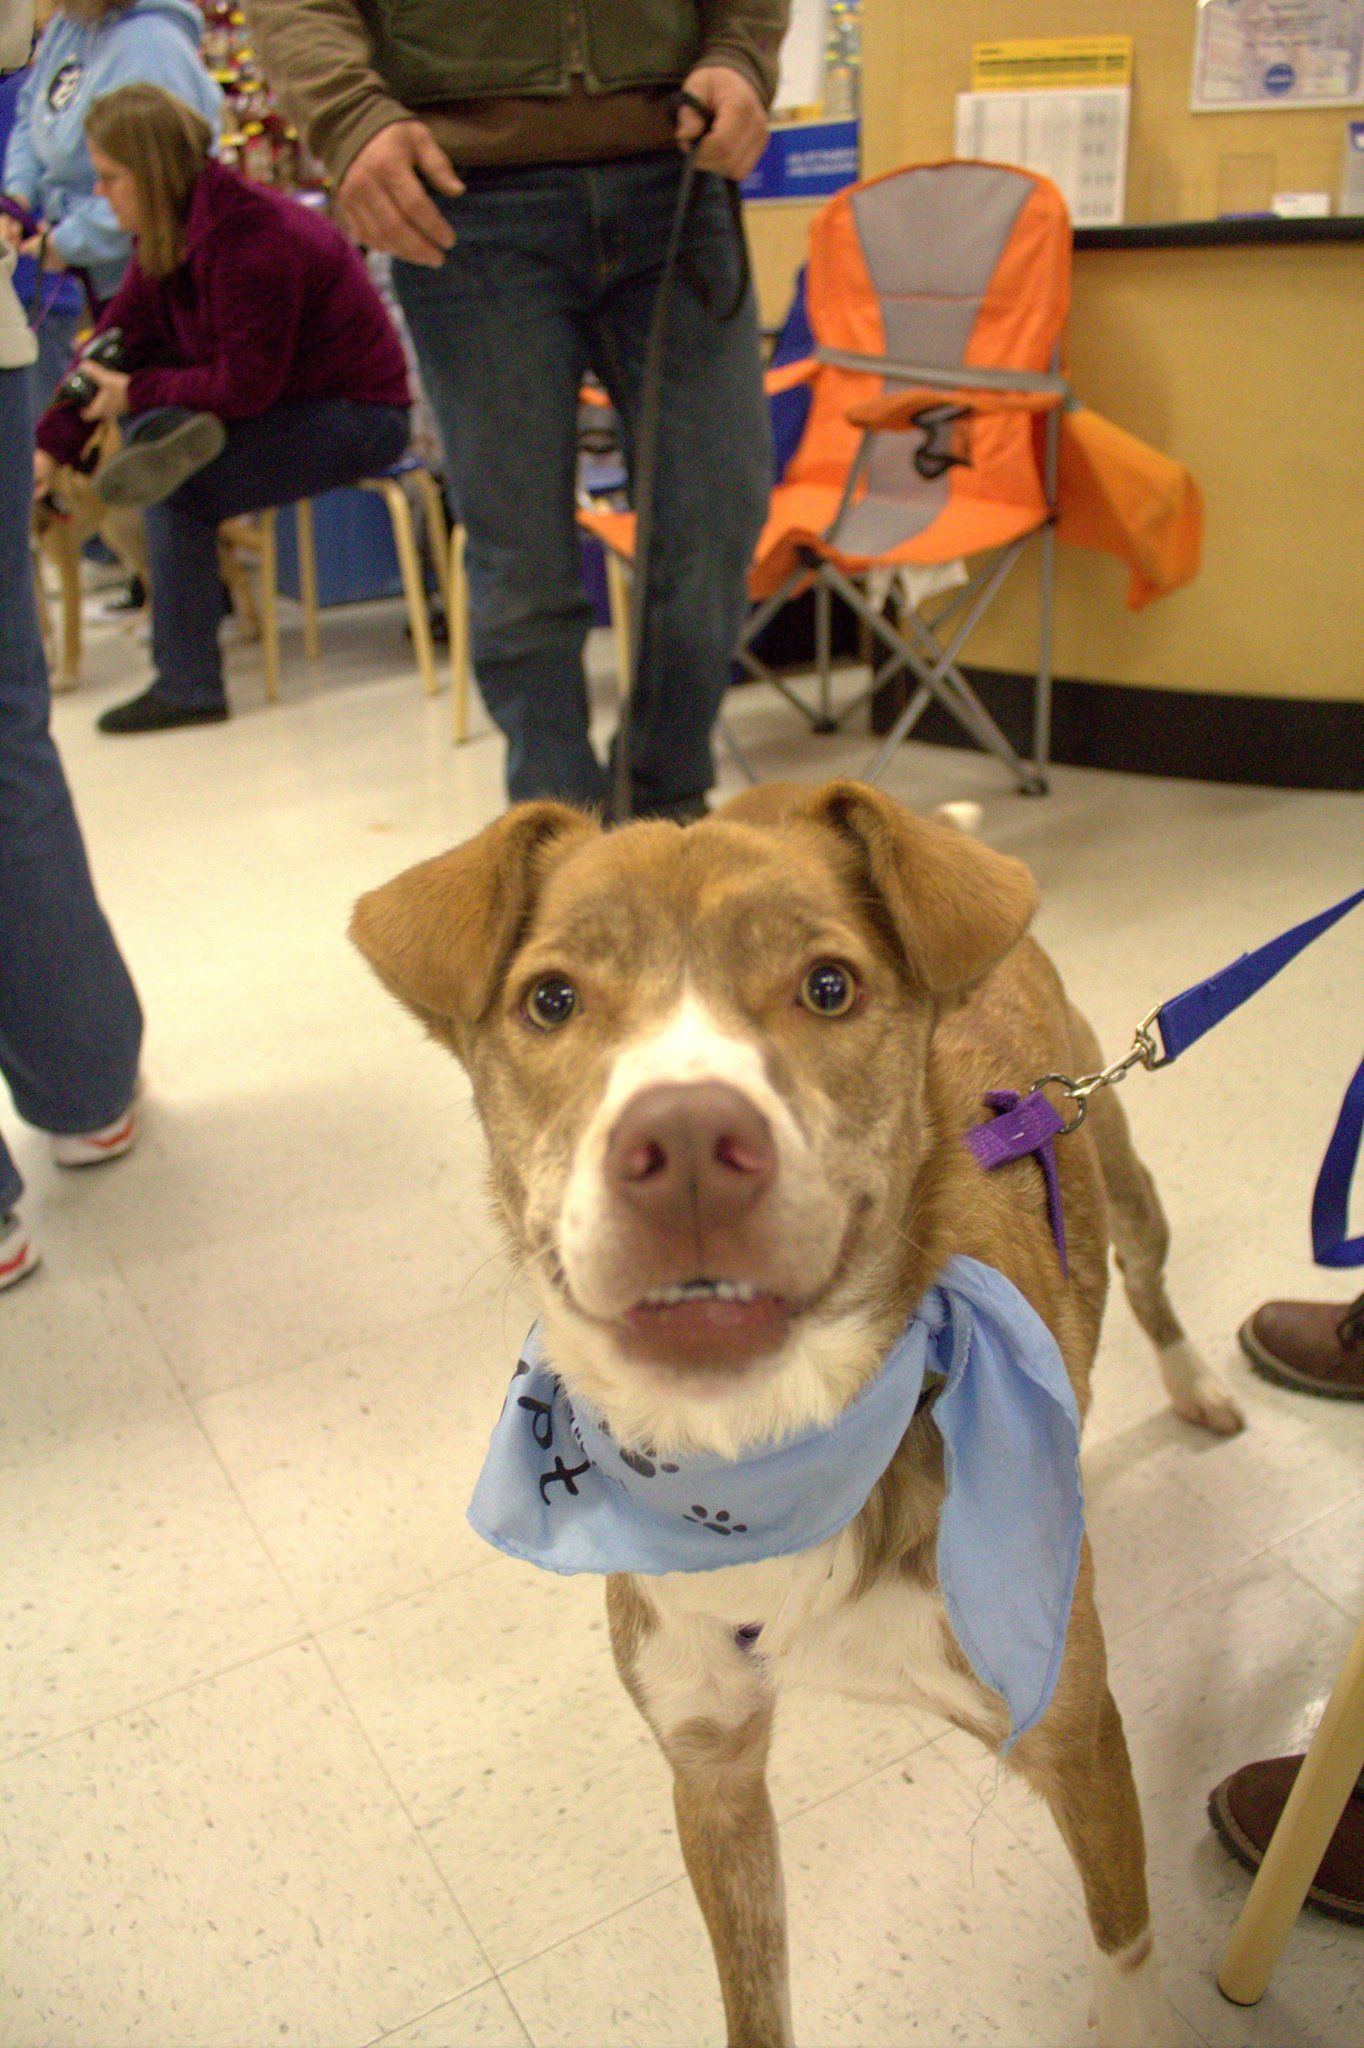 Check Out This Winning Smile Photo By Erika Weaver During An Oph Adoption Event At The Petsmart In York Pa Rescue Dogs Dog Breeds Dogs